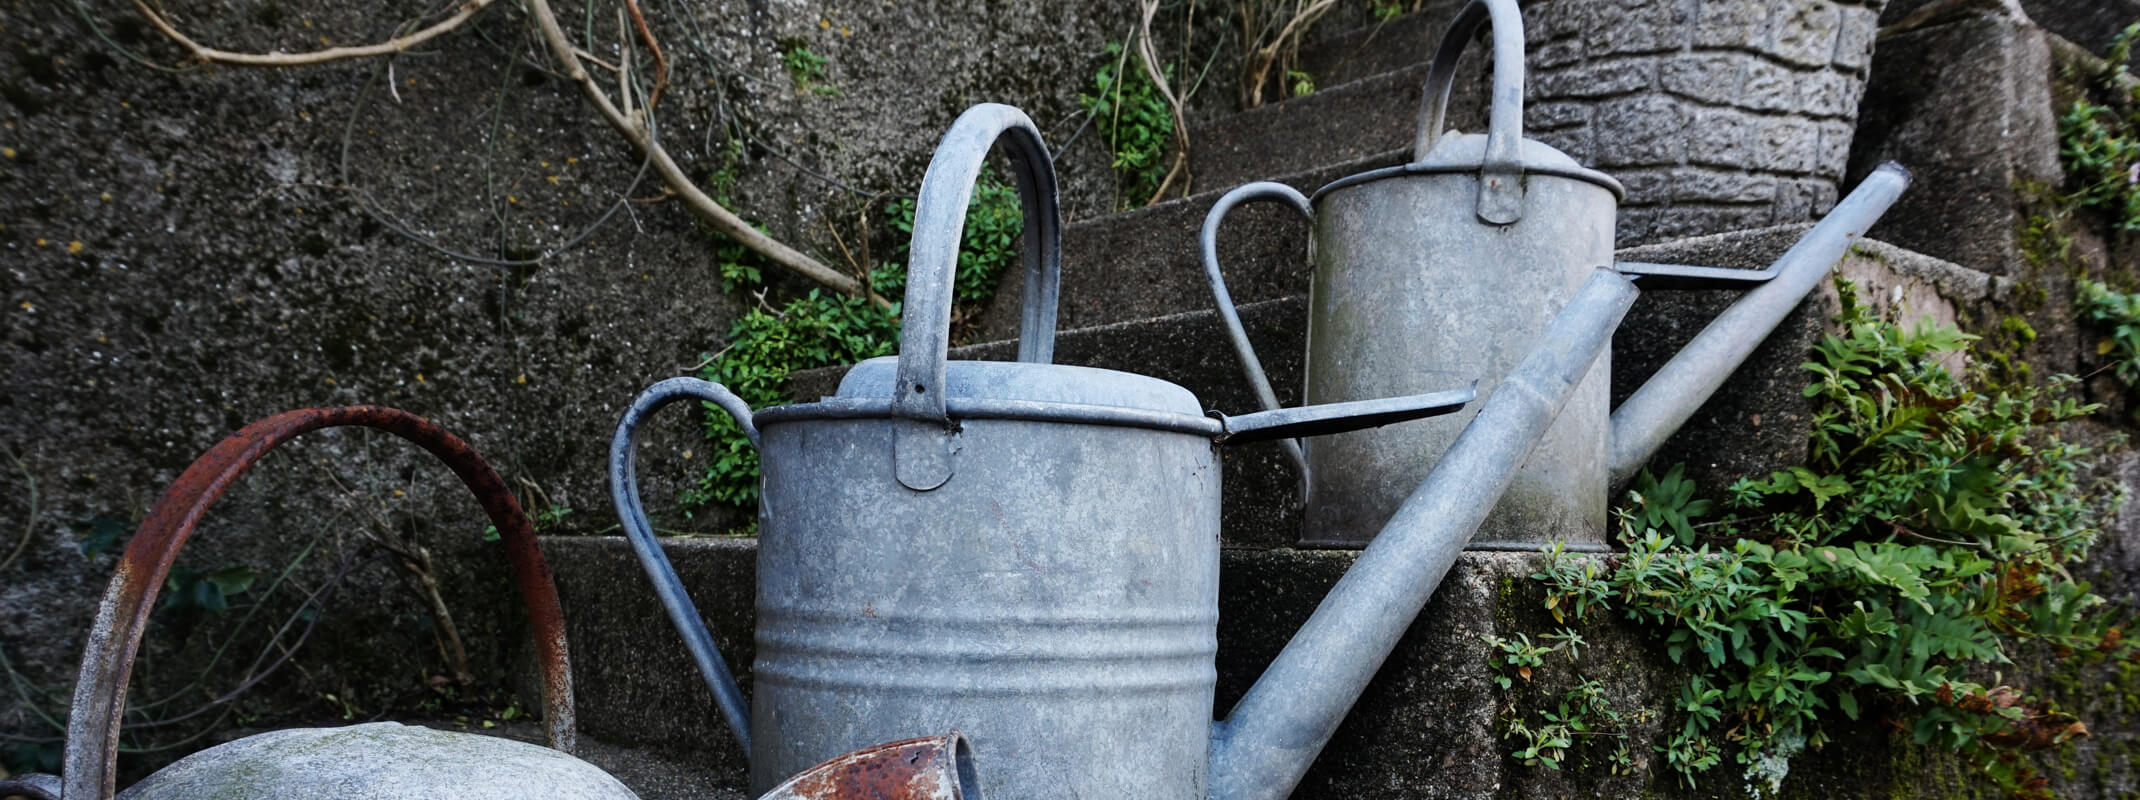 Rustic metal watering cans place on moss and ivy covered brick steps